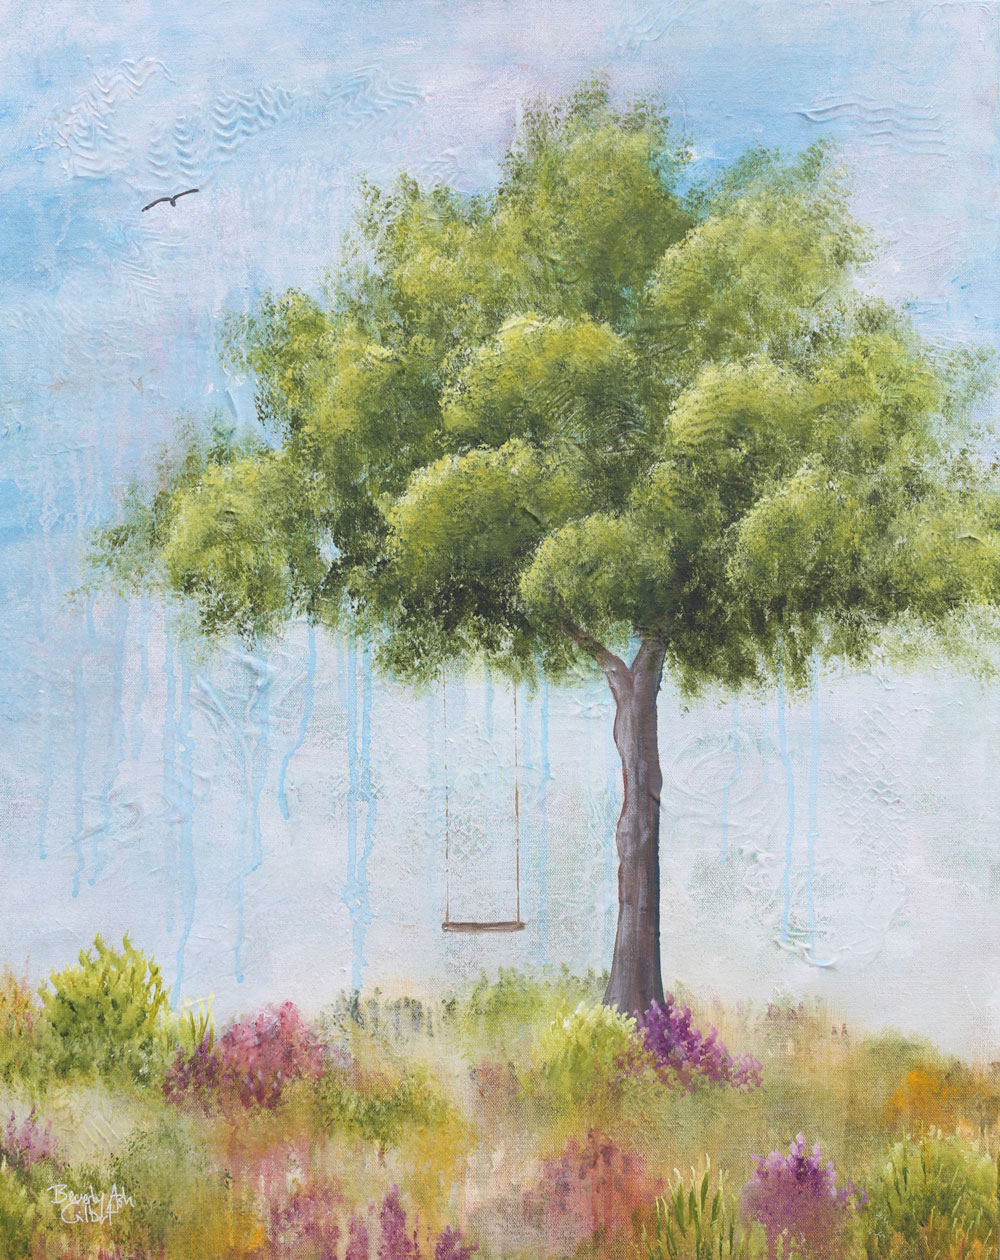 Summertime - Dreamy Landscapes Painting Collection - Beverly Ash Gilbert